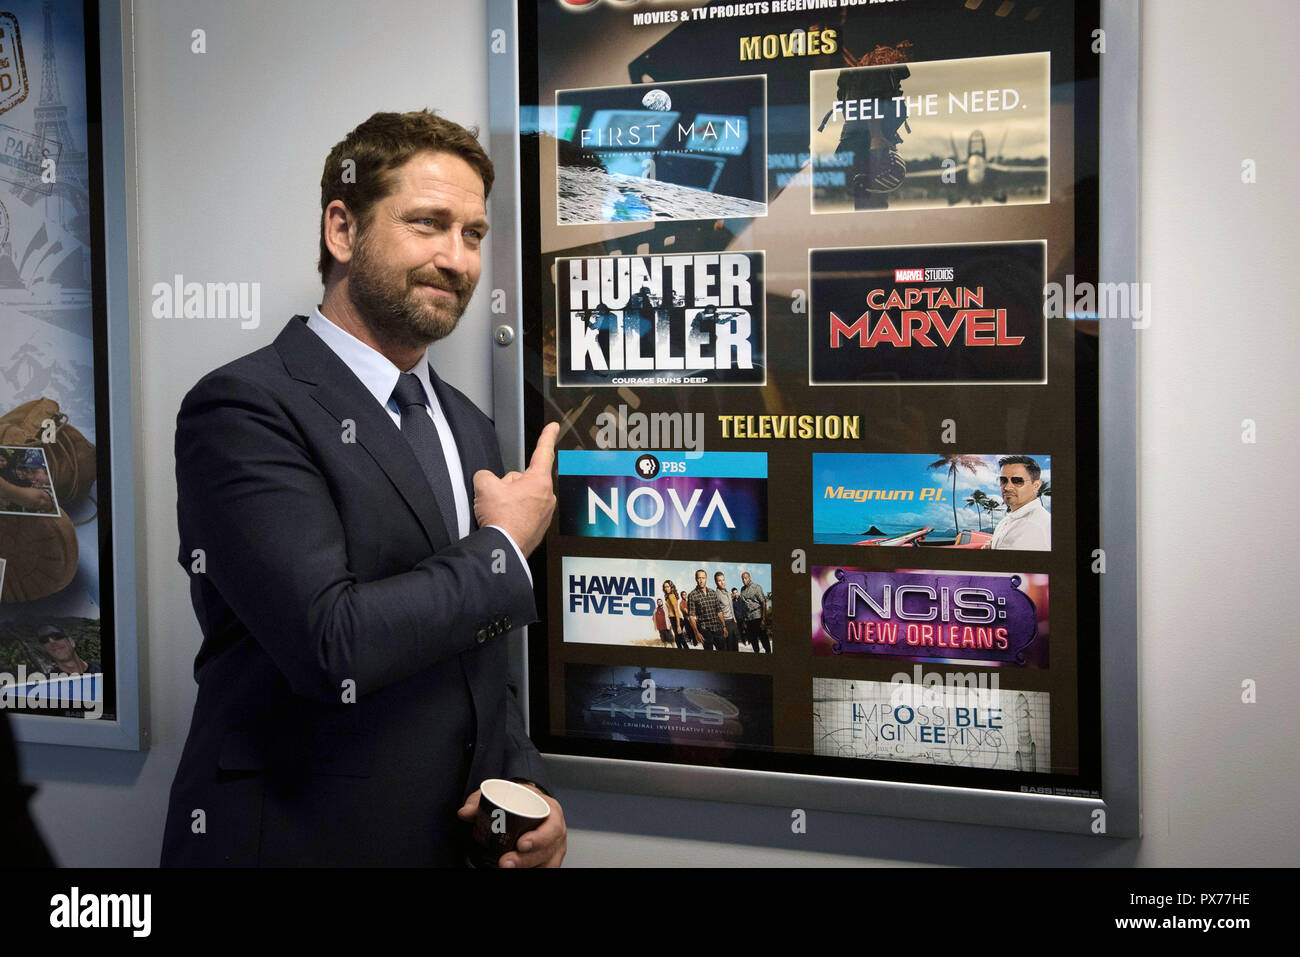 Scottish actor Gerard Butler poses with movie posters from